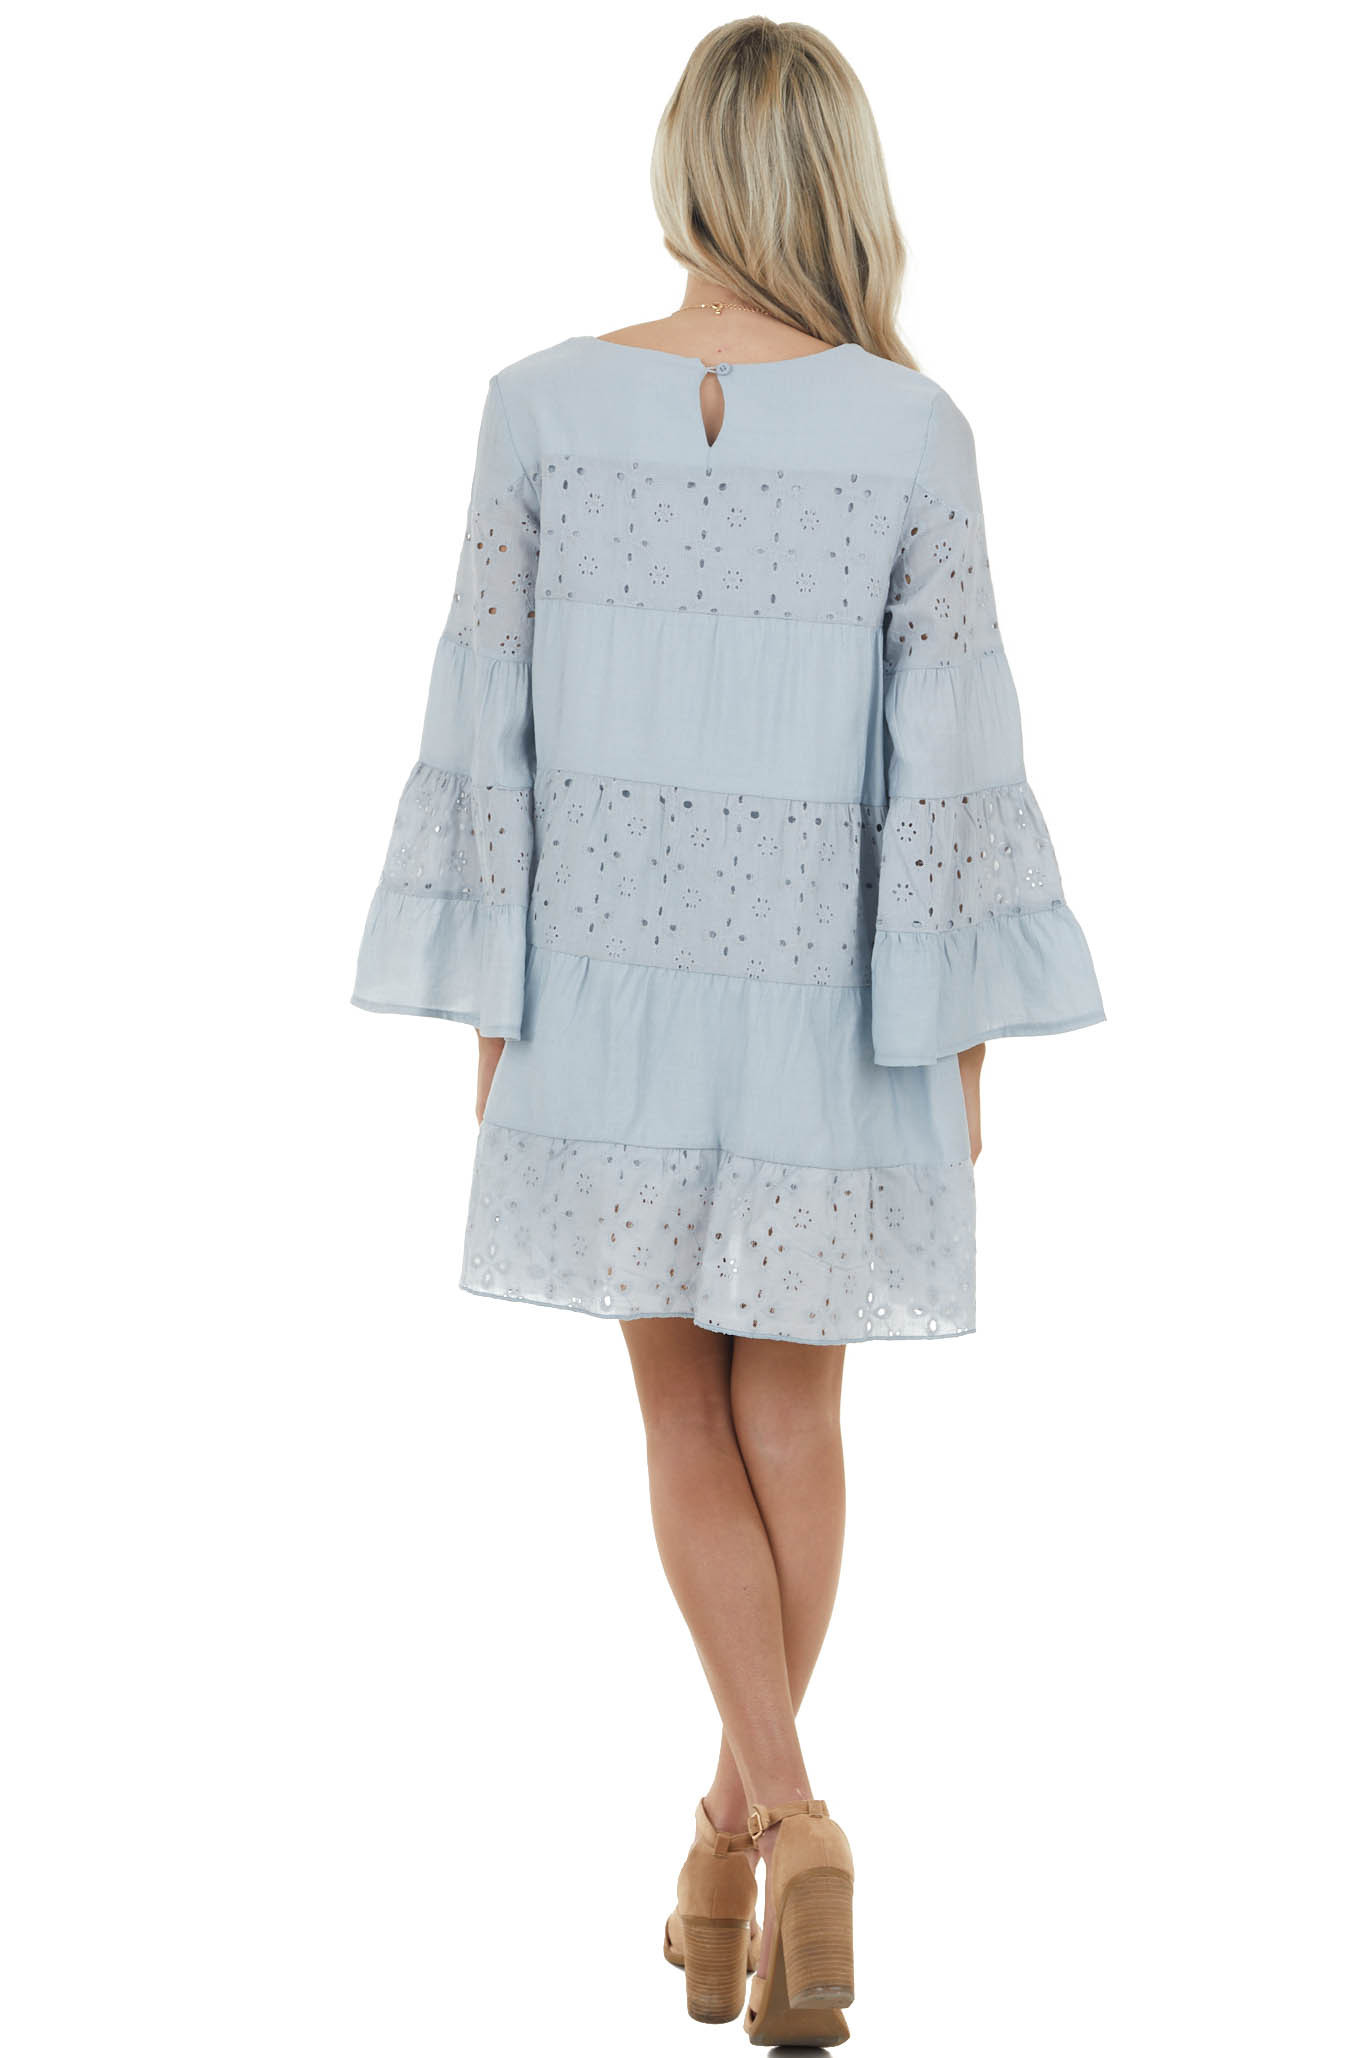 Powder Blue Long Flare Sleeve Dress with Eyelet Lace Details